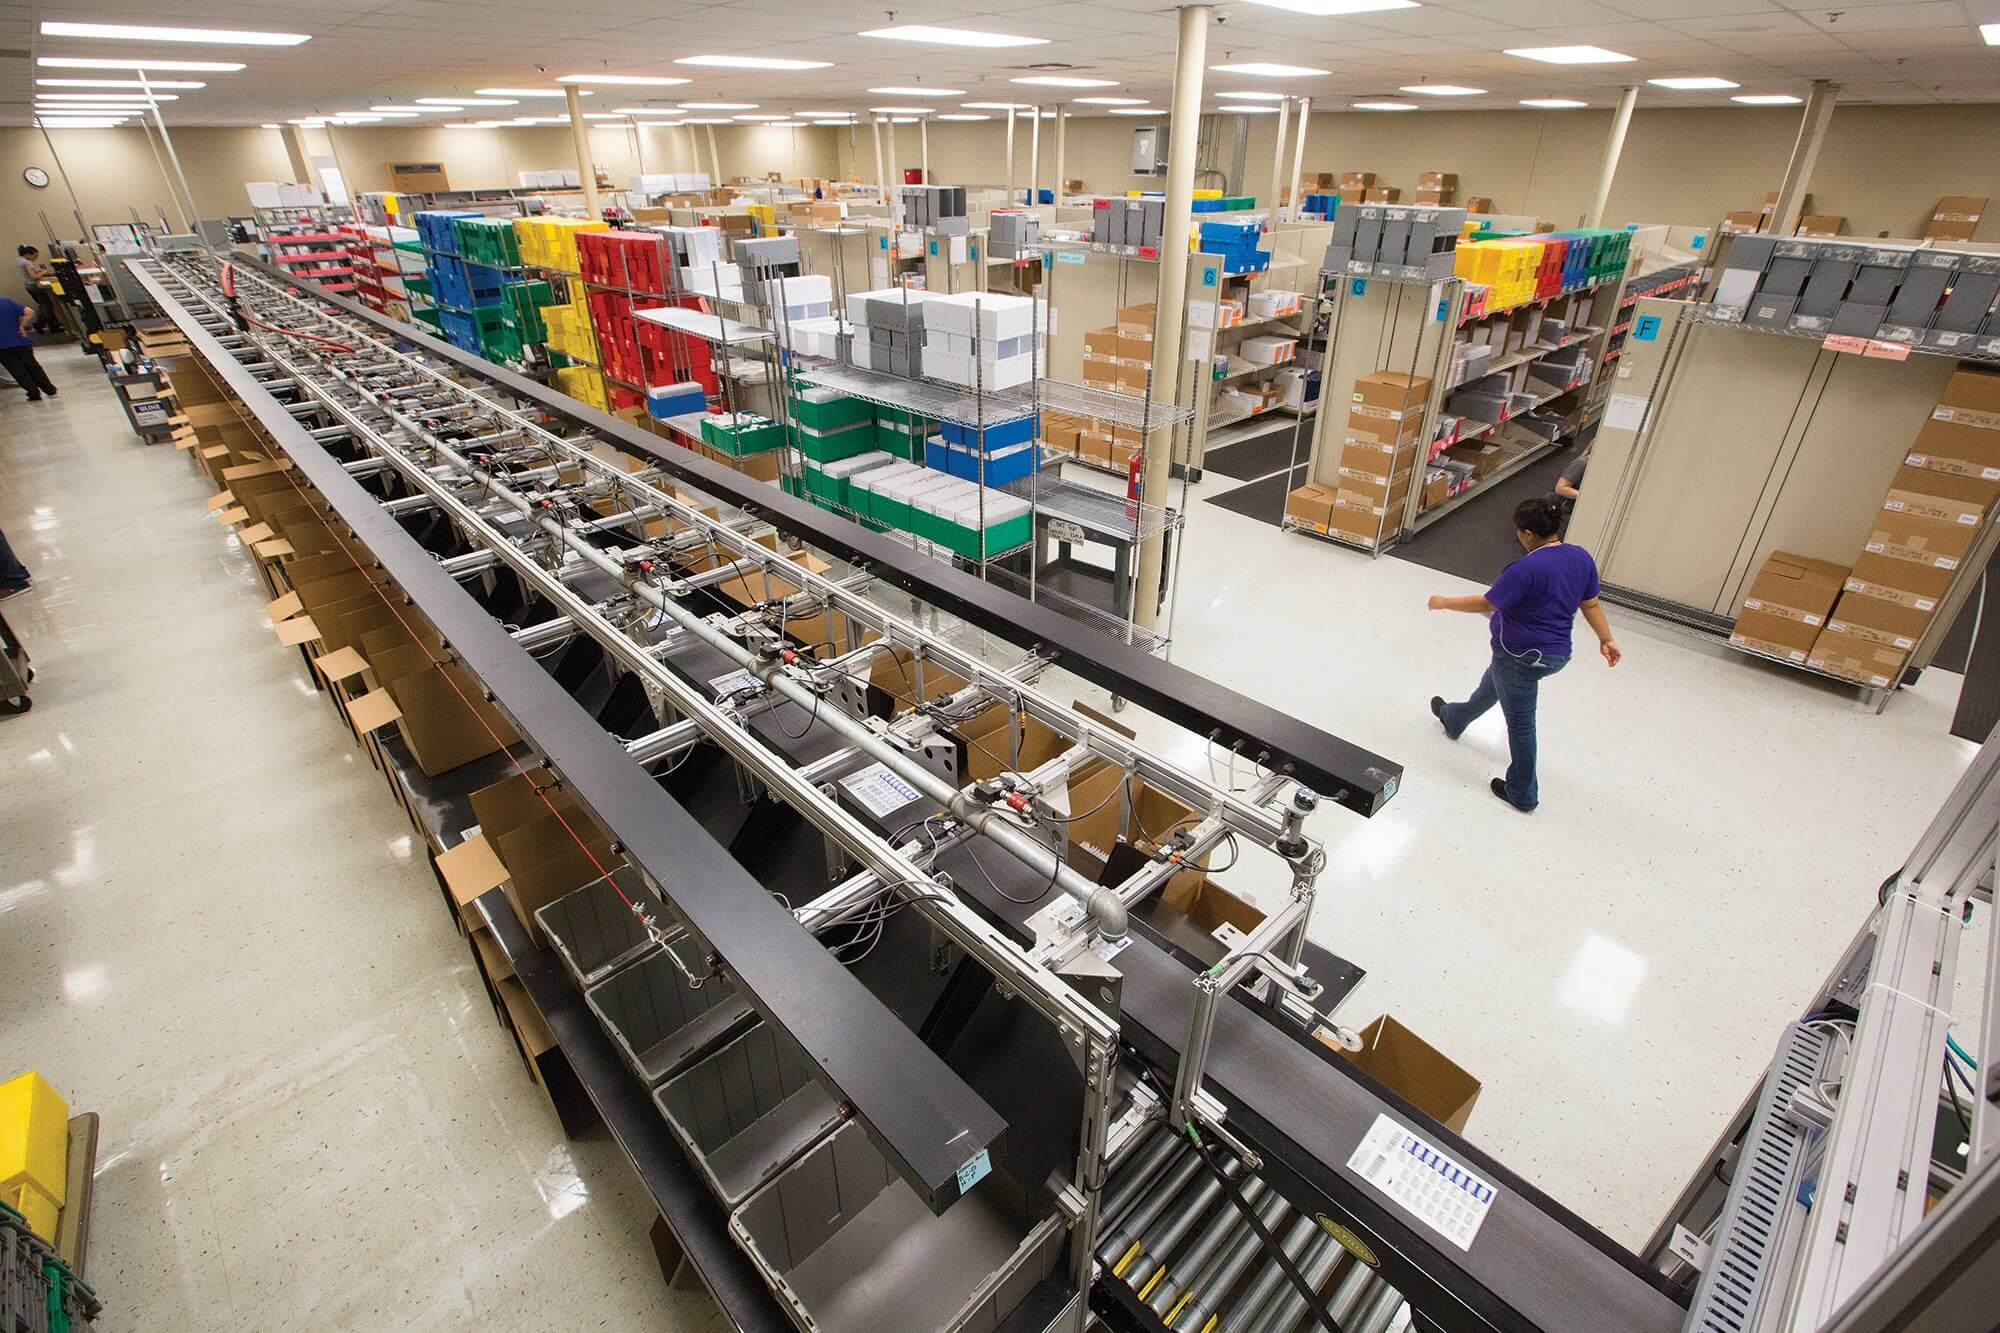 The Texas Correctional Managed Care program operates its own pharmacy, using a custom-made conveyor belt and automated machines to fill approximately 20,000 prescriptions a day.